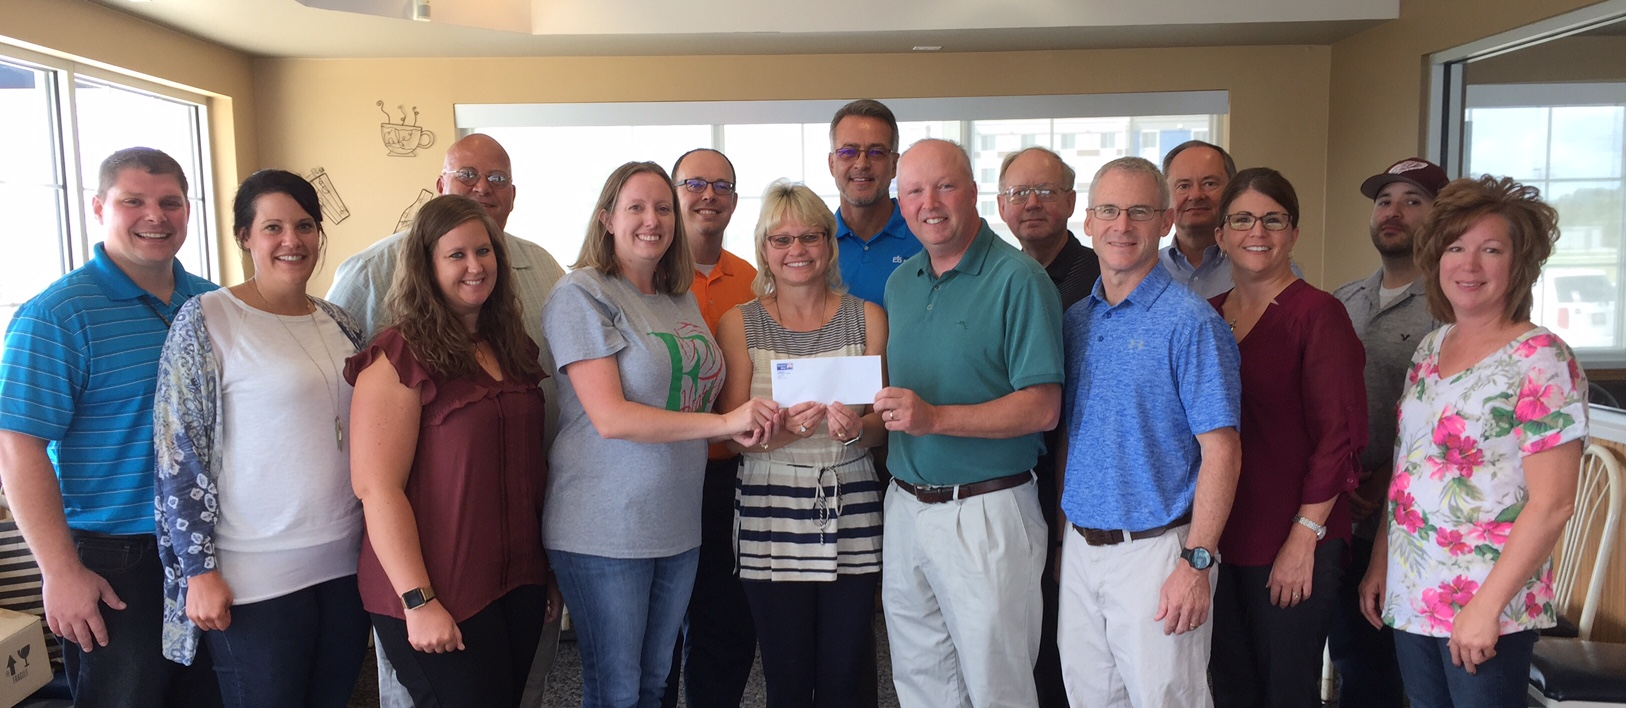 Over $13,000 Raised for United Way of Effingham County in Fundraiser